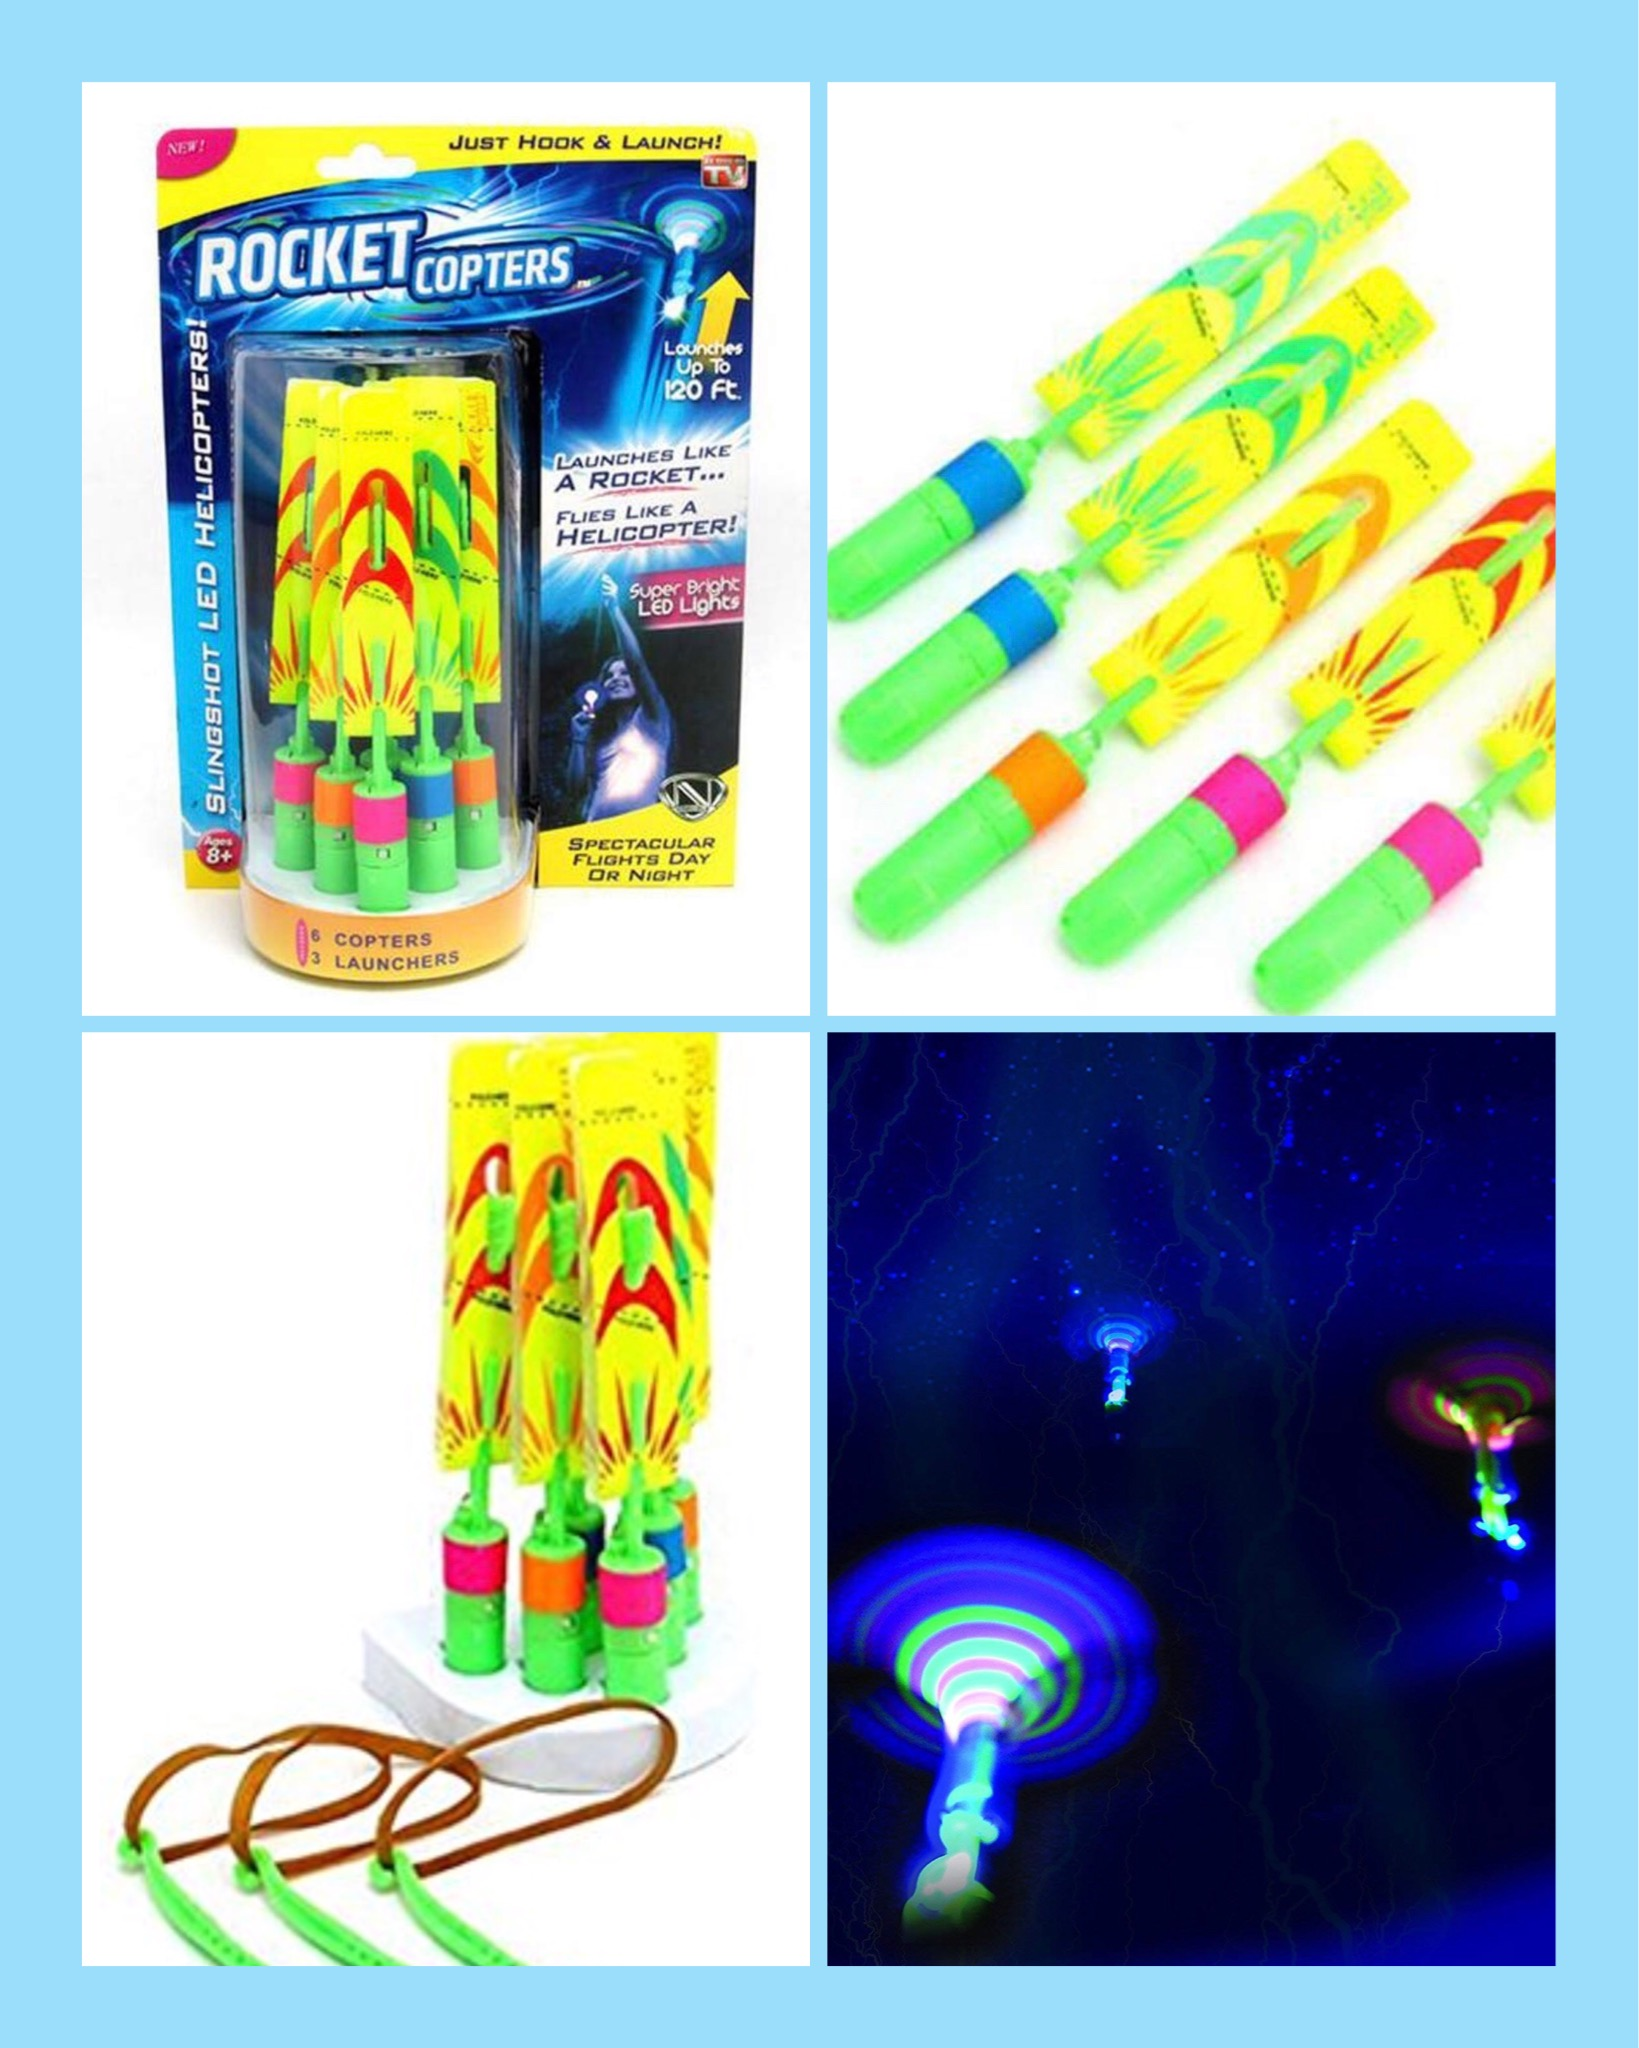 A Pack Of Rocket Copters Glochi Products Llc